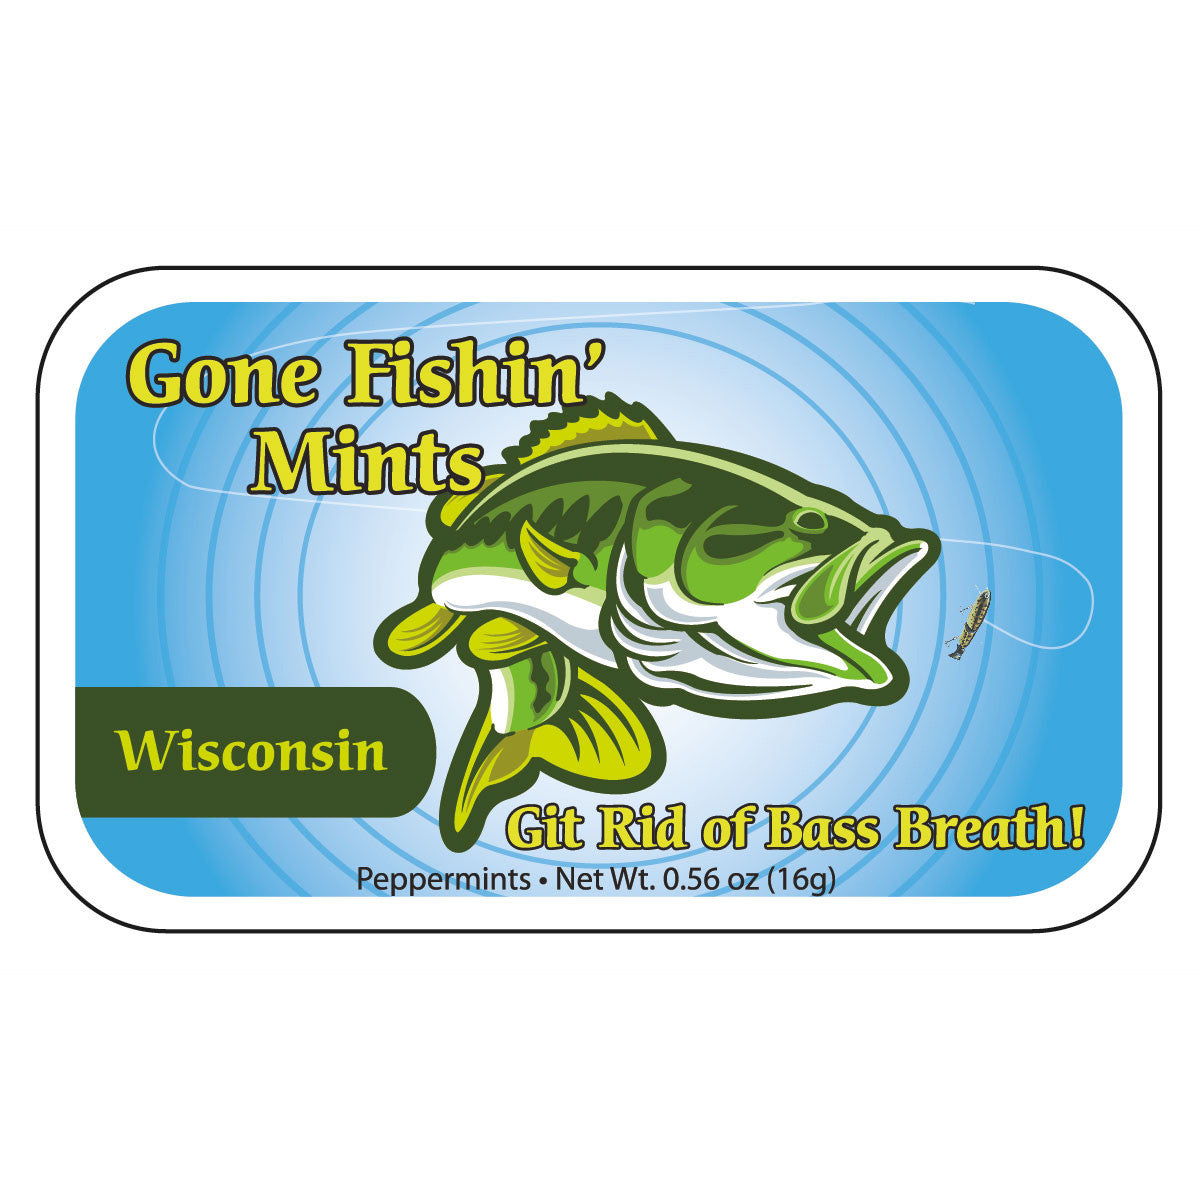 Gone Fishin' Wisconsin - 0109S